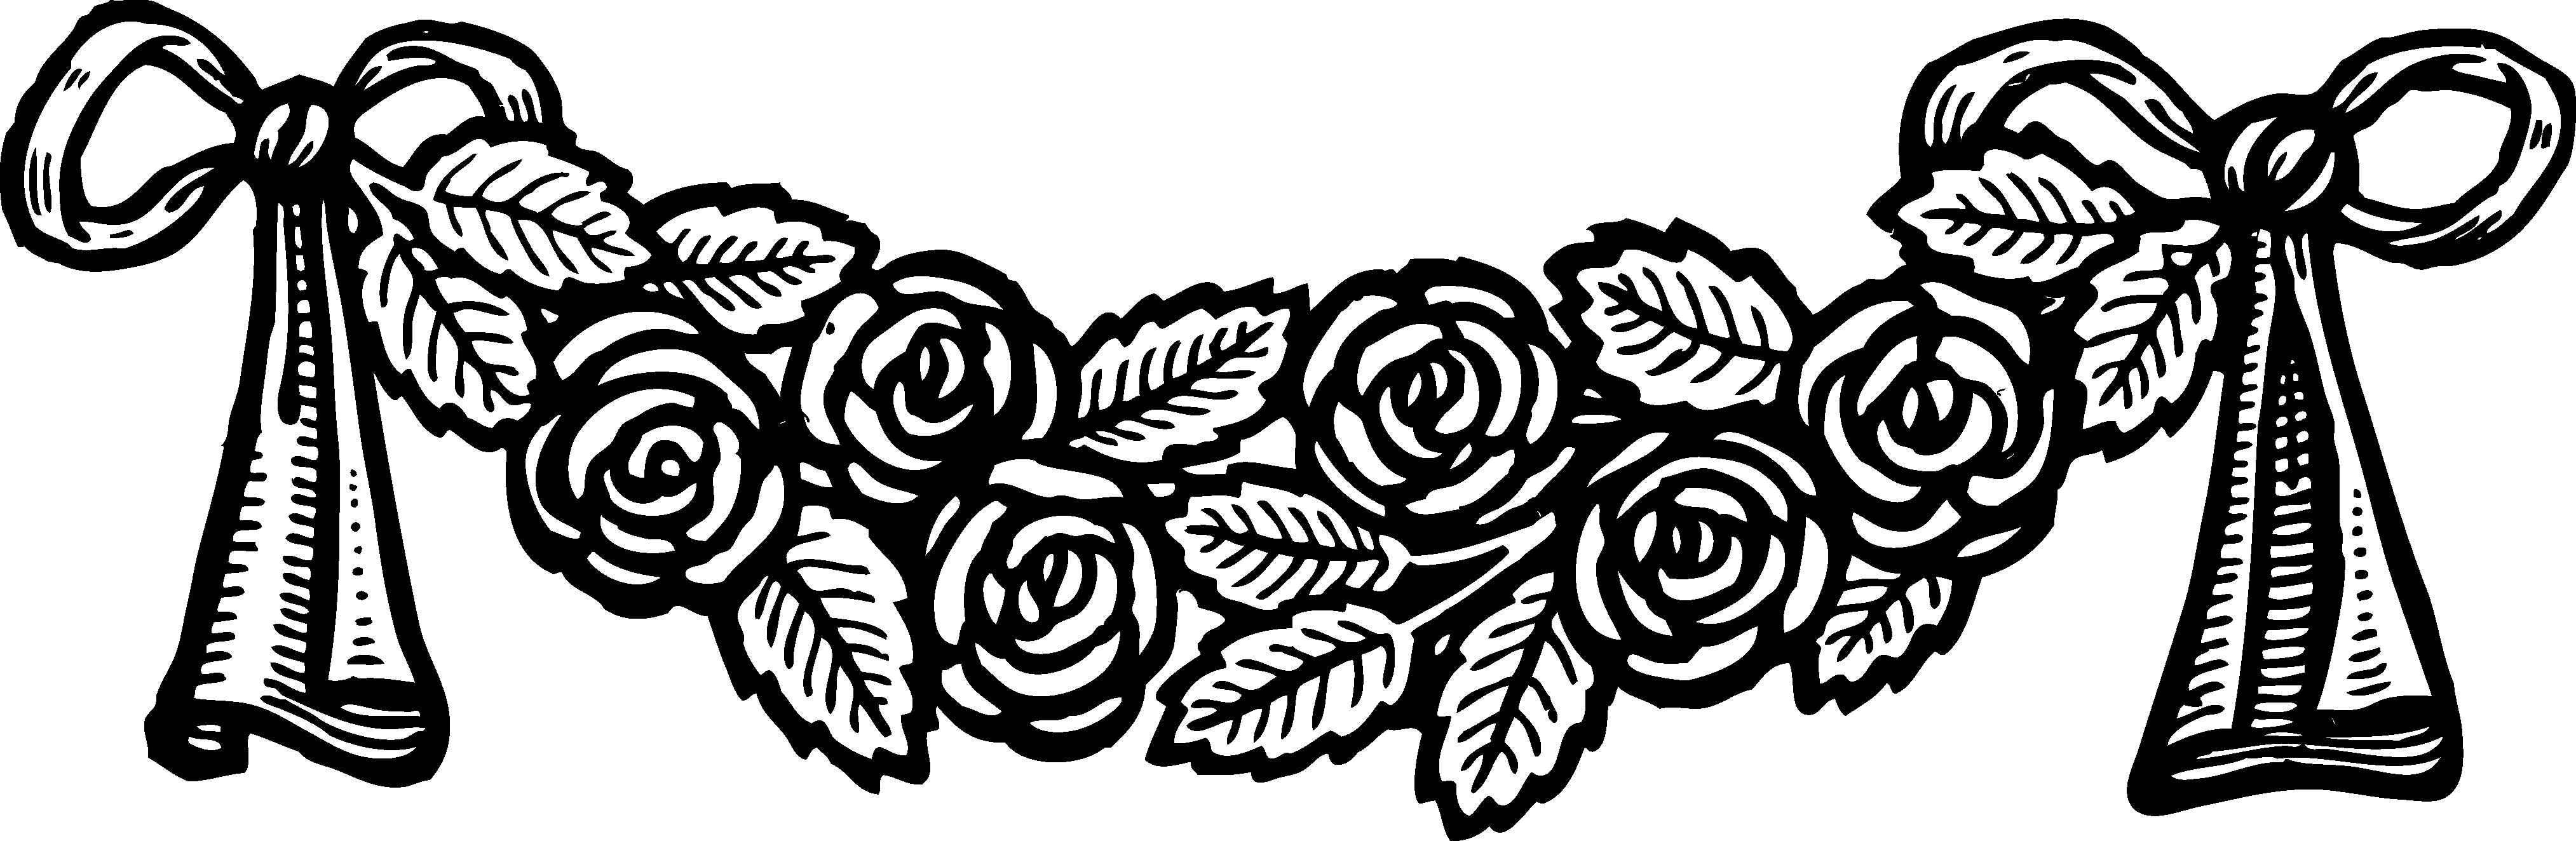 Vintage black banner clipart vector royalty free Download Banner Clip Vintage - Vintage Black And White Rose ... vector royalty free